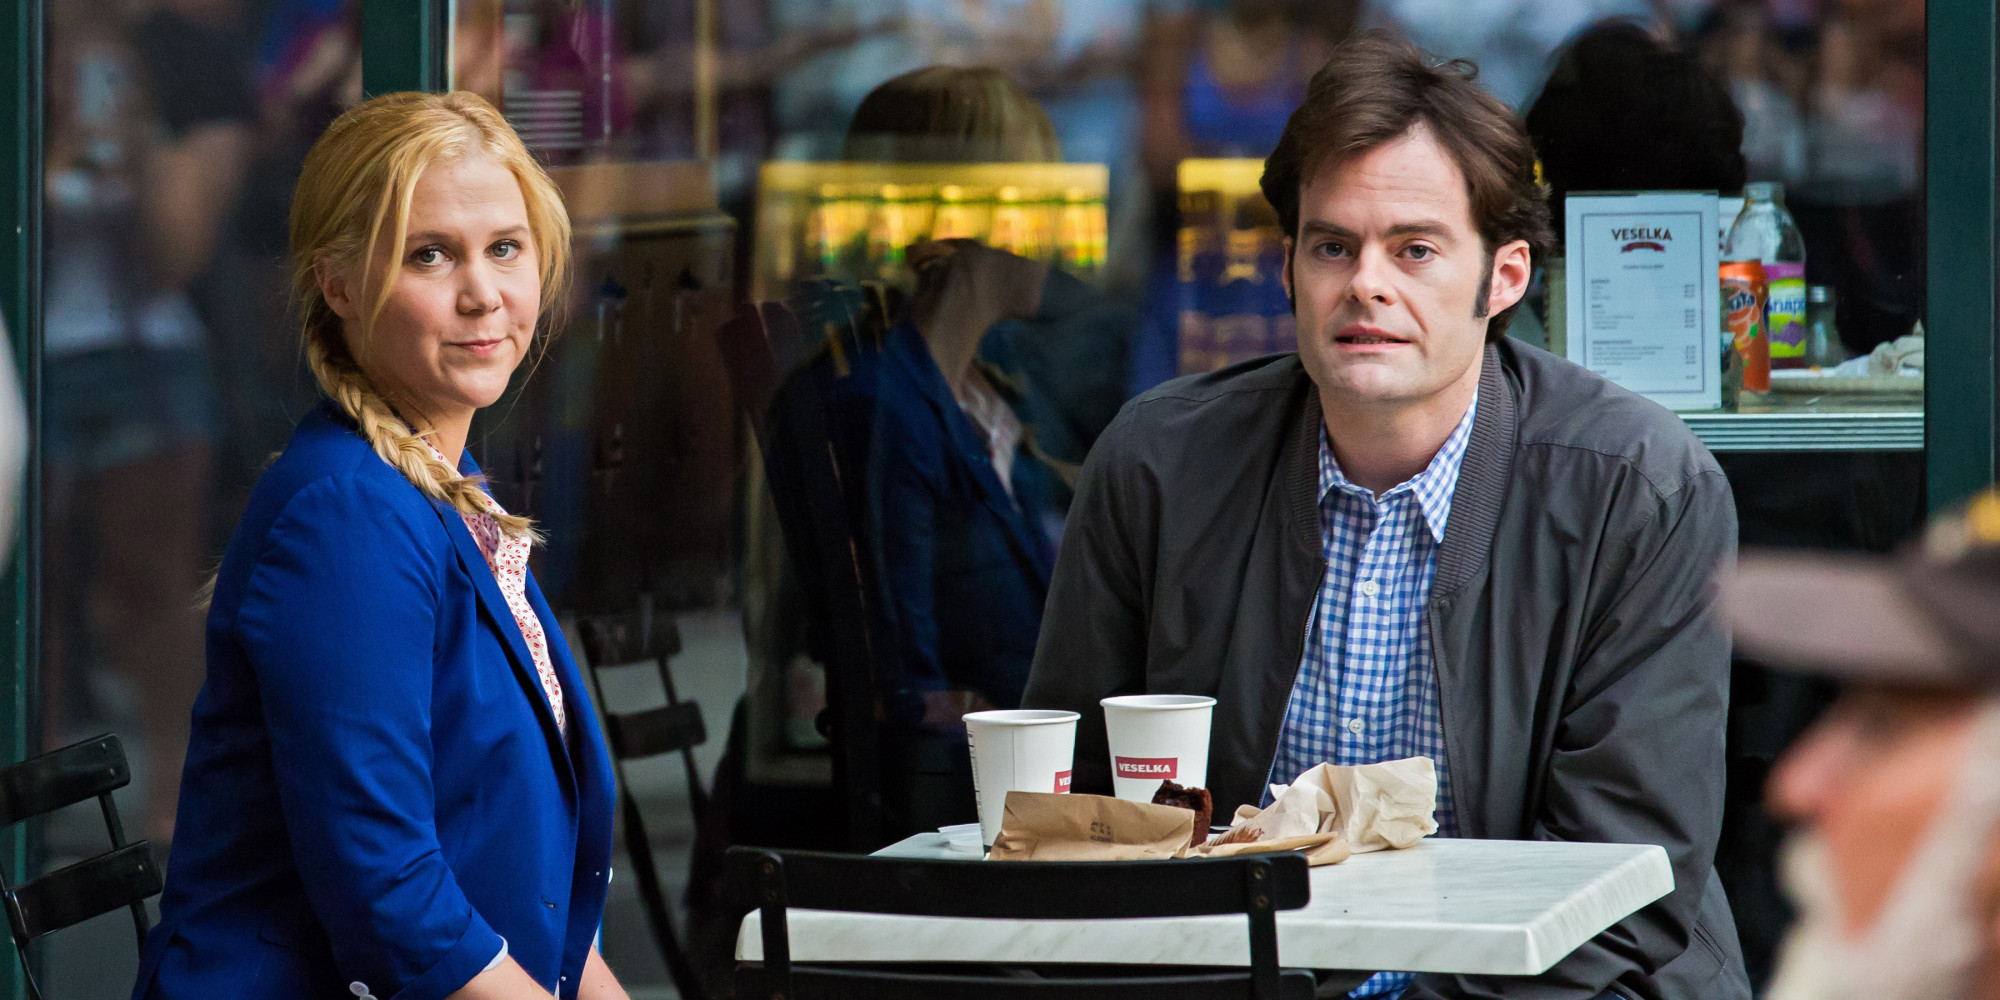 Trainwreck  (2015): Amy Schumer and Bill Hader.